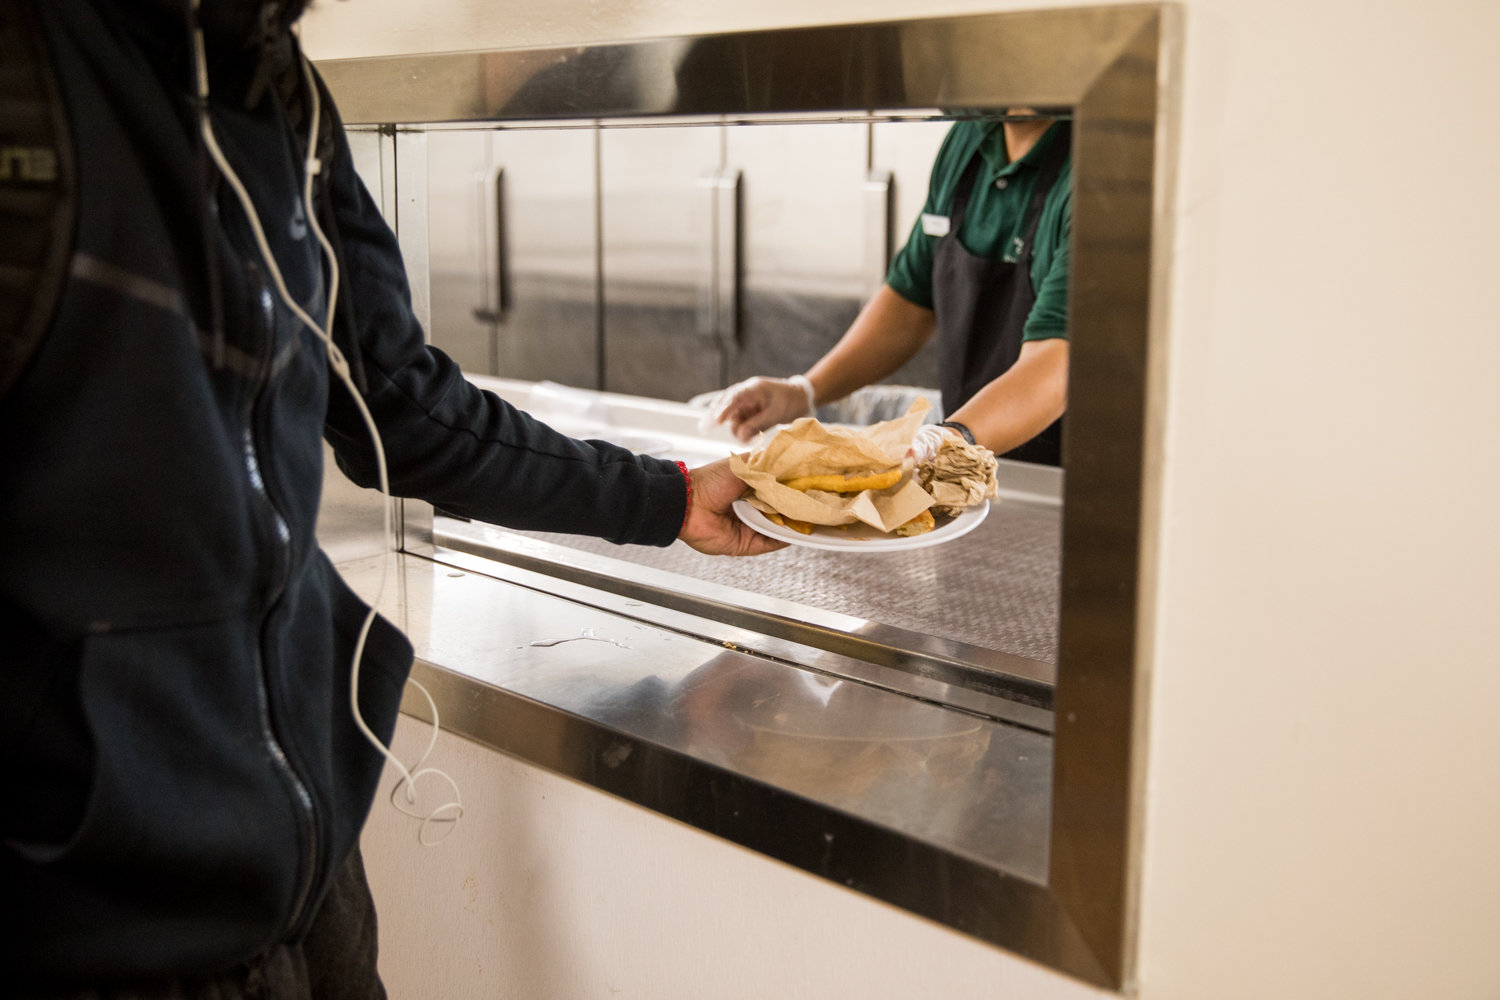 One of the services Aramark Corp., will oversee at Manhattan College is dining. The company also provides food for prisons across America, which has become an area of contention among several members of the college community.